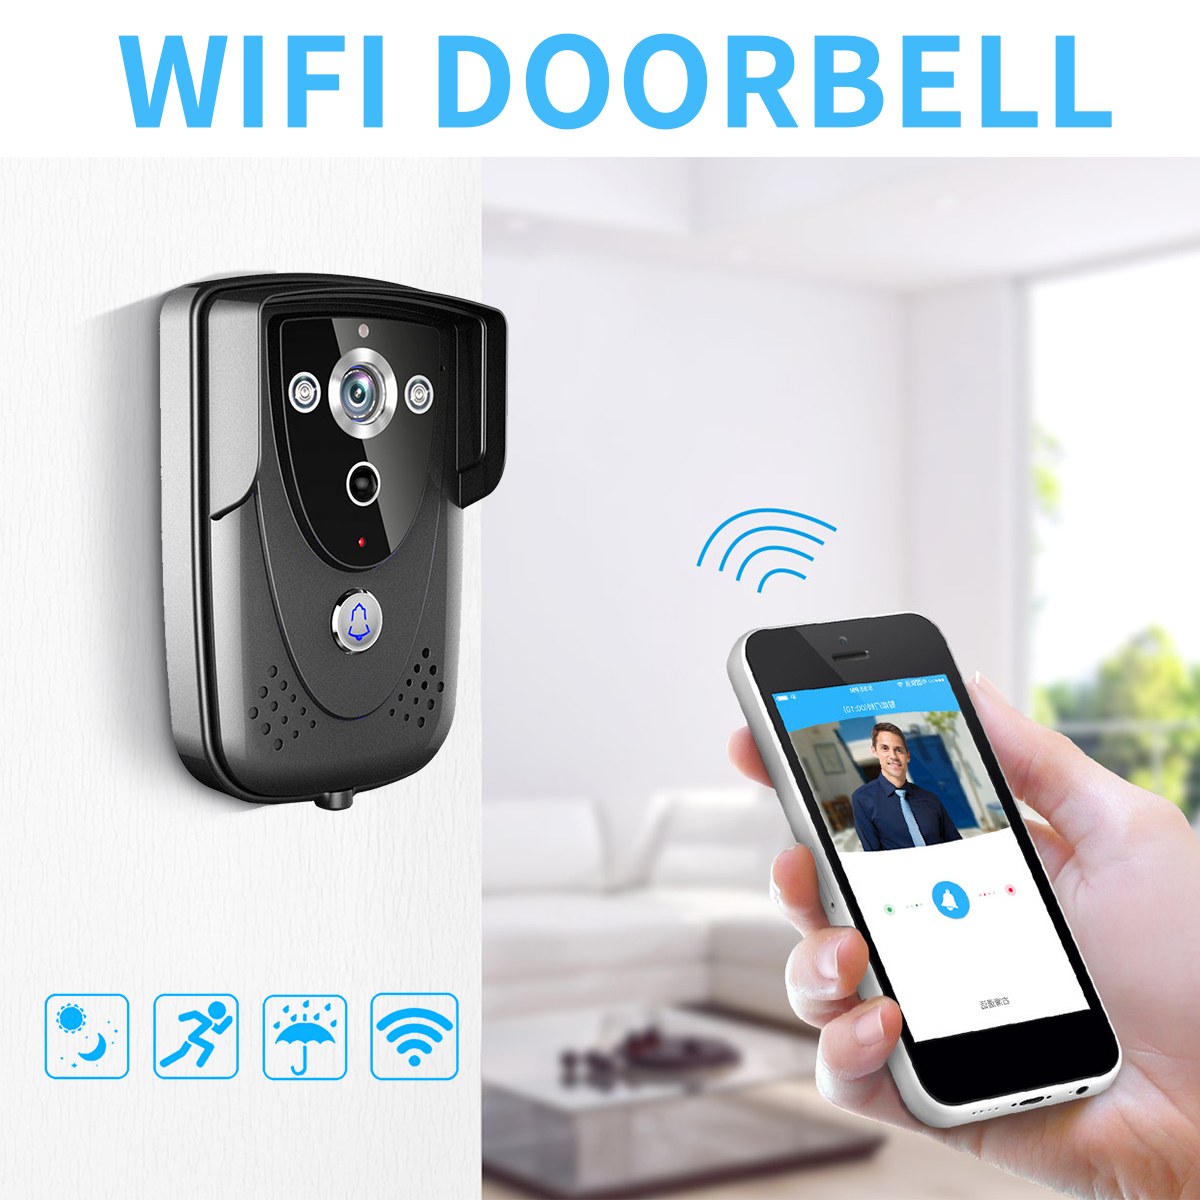 Smart 1 million pixel Wireless WiFi Video Door phone Intercom Record Doorbell For Smartphone Remote View Unlock IOS Android jcsmarts rfid access wireless wifi ip doorbell camera video intercom for android ios smartphone remote view unlock with sd card